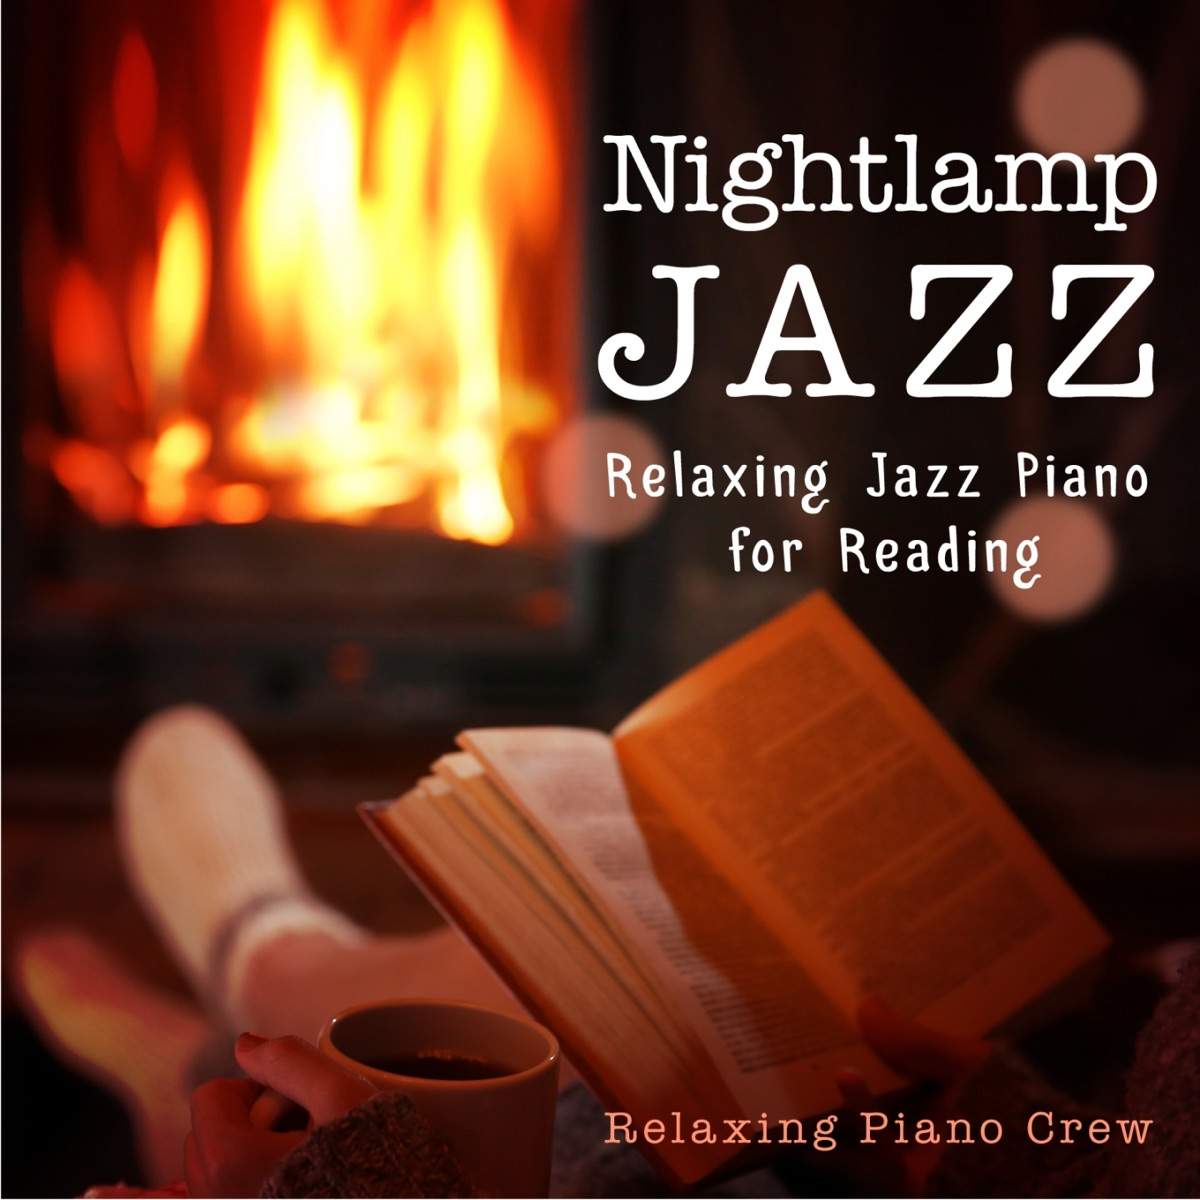 Nightlamp Jazz - Relaxing Jazz Piano for Reading Relaxing Piano Crew CD cover